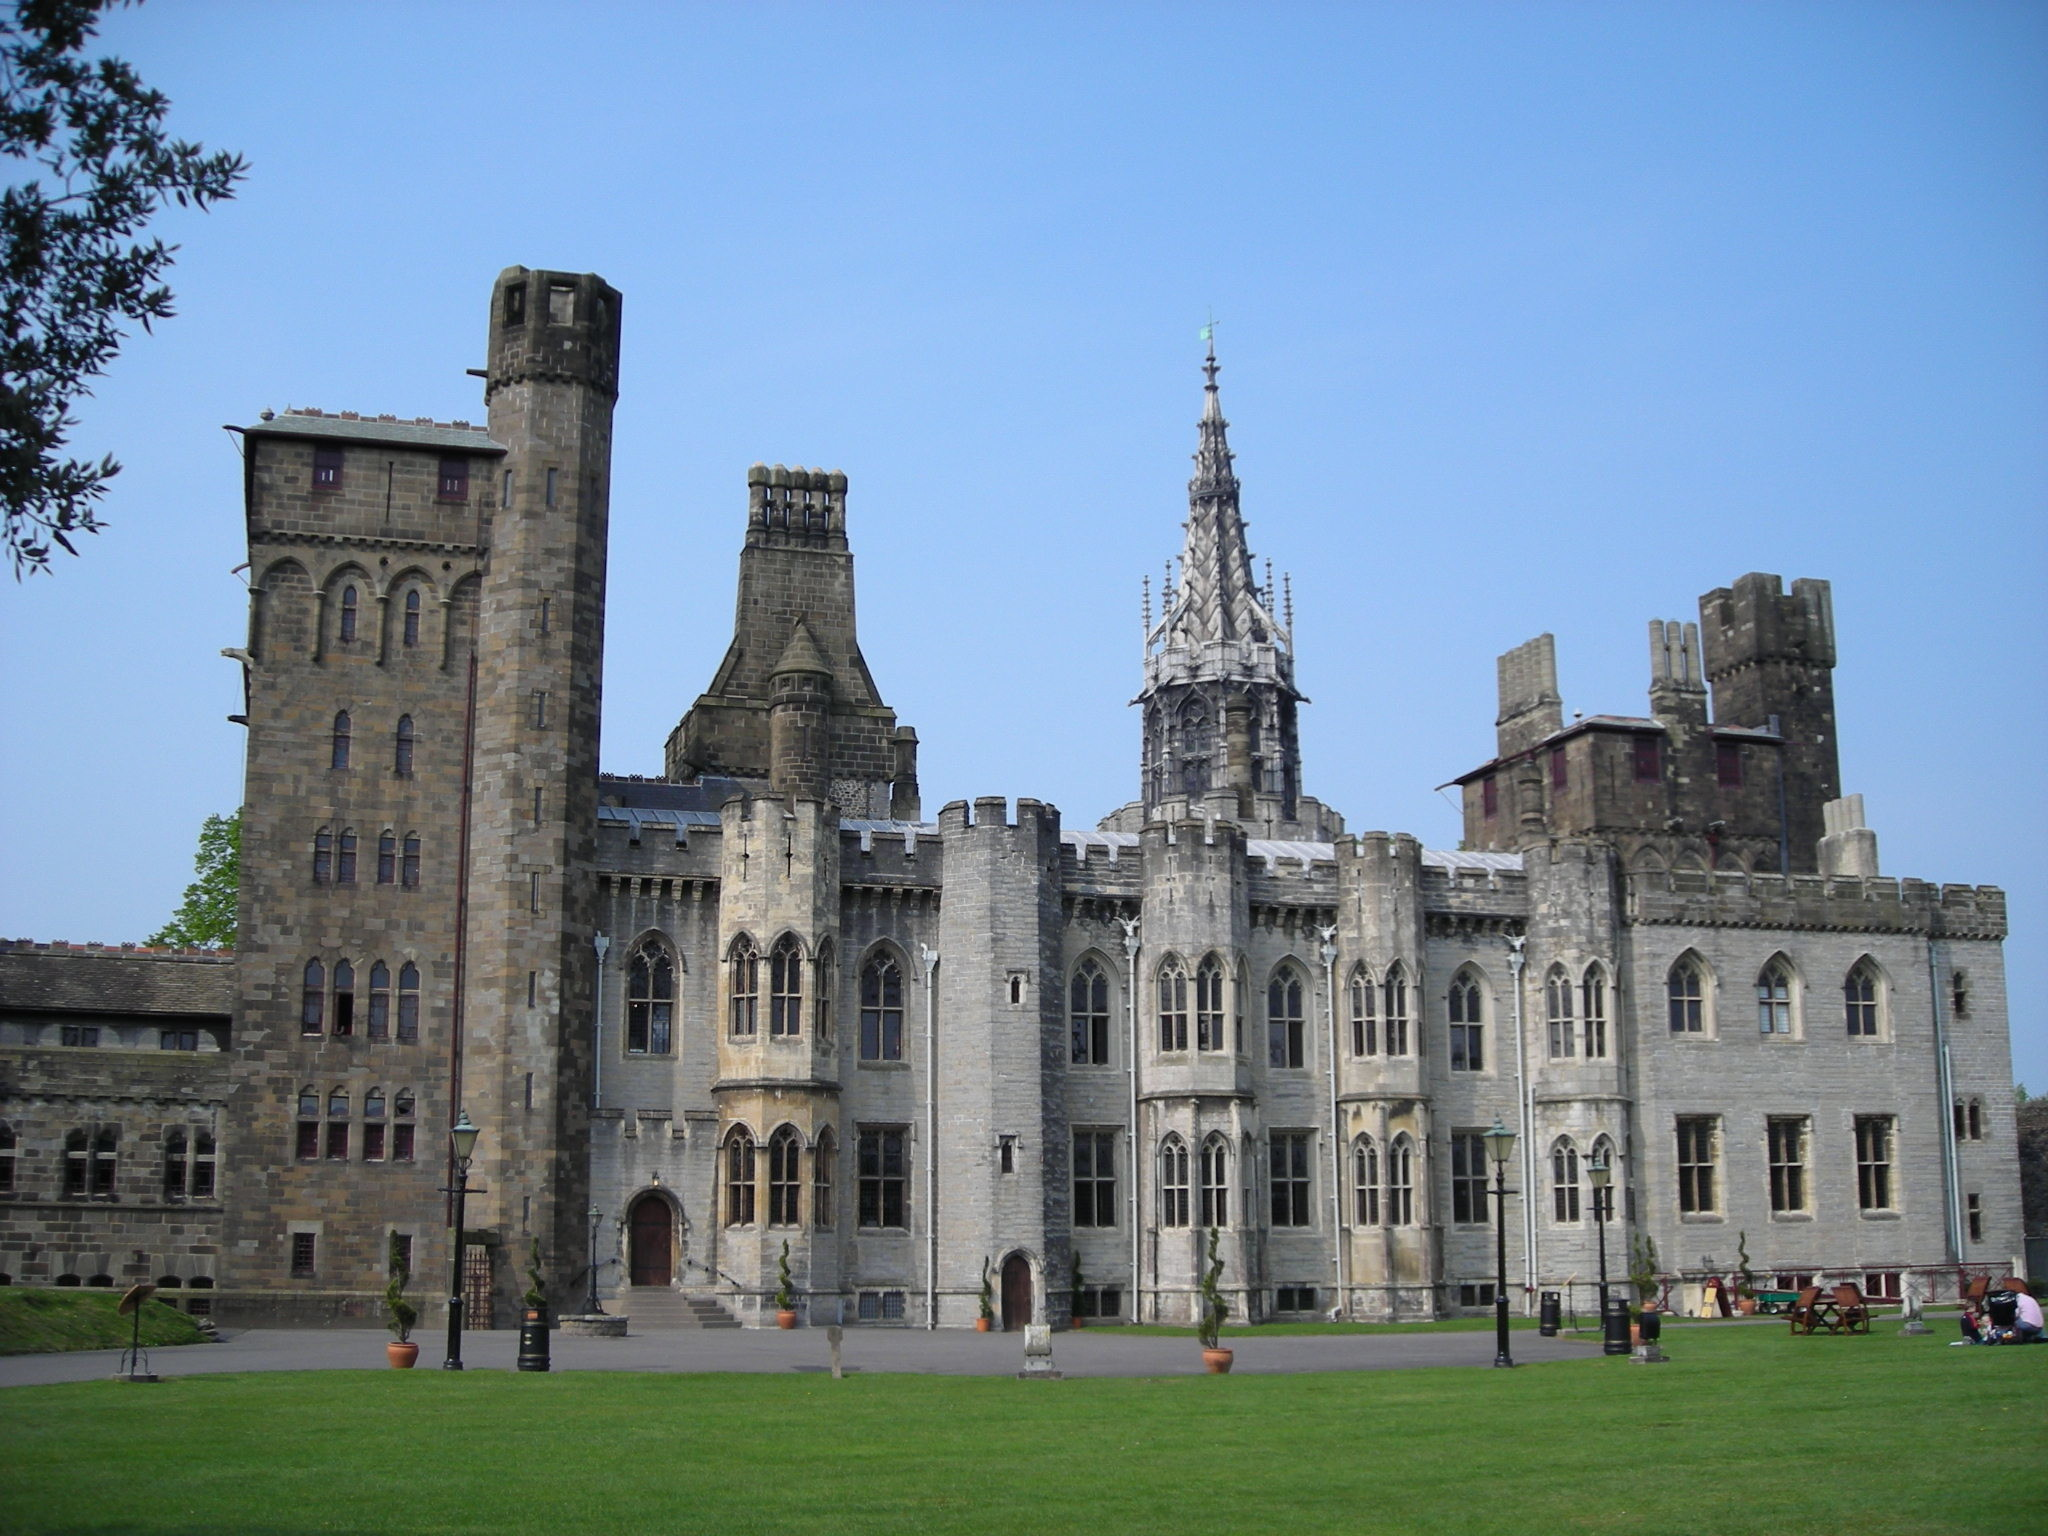 2048x1536 Cardiff Castle Tourism Wallpaper